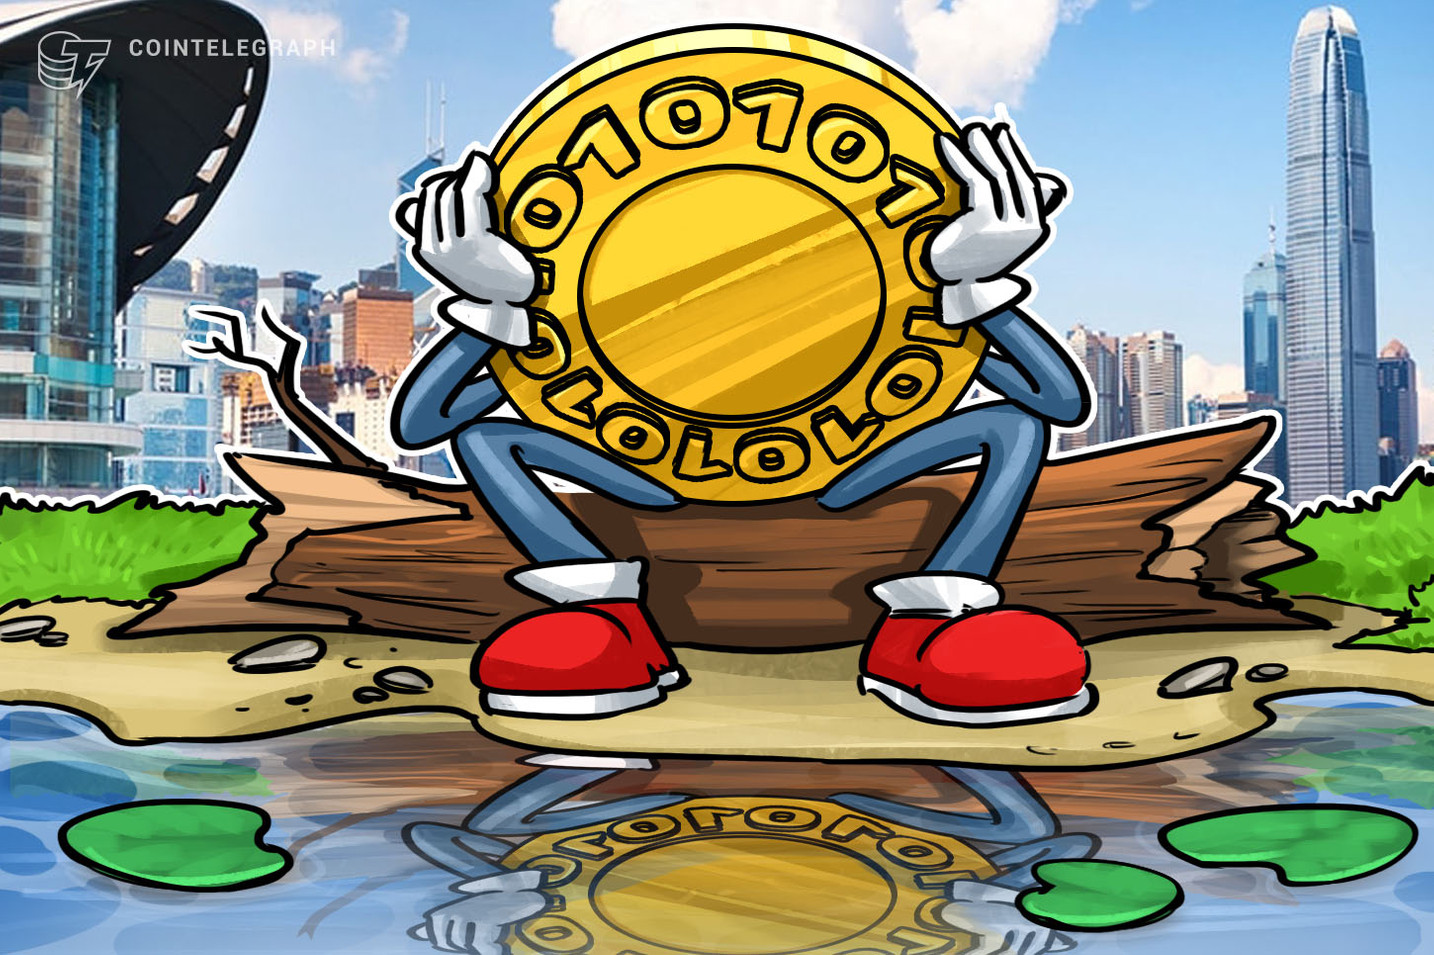 Hong Kong Gov't Report Says Bitcoin Poses 'Medium-Low' Risk In Financial Crime